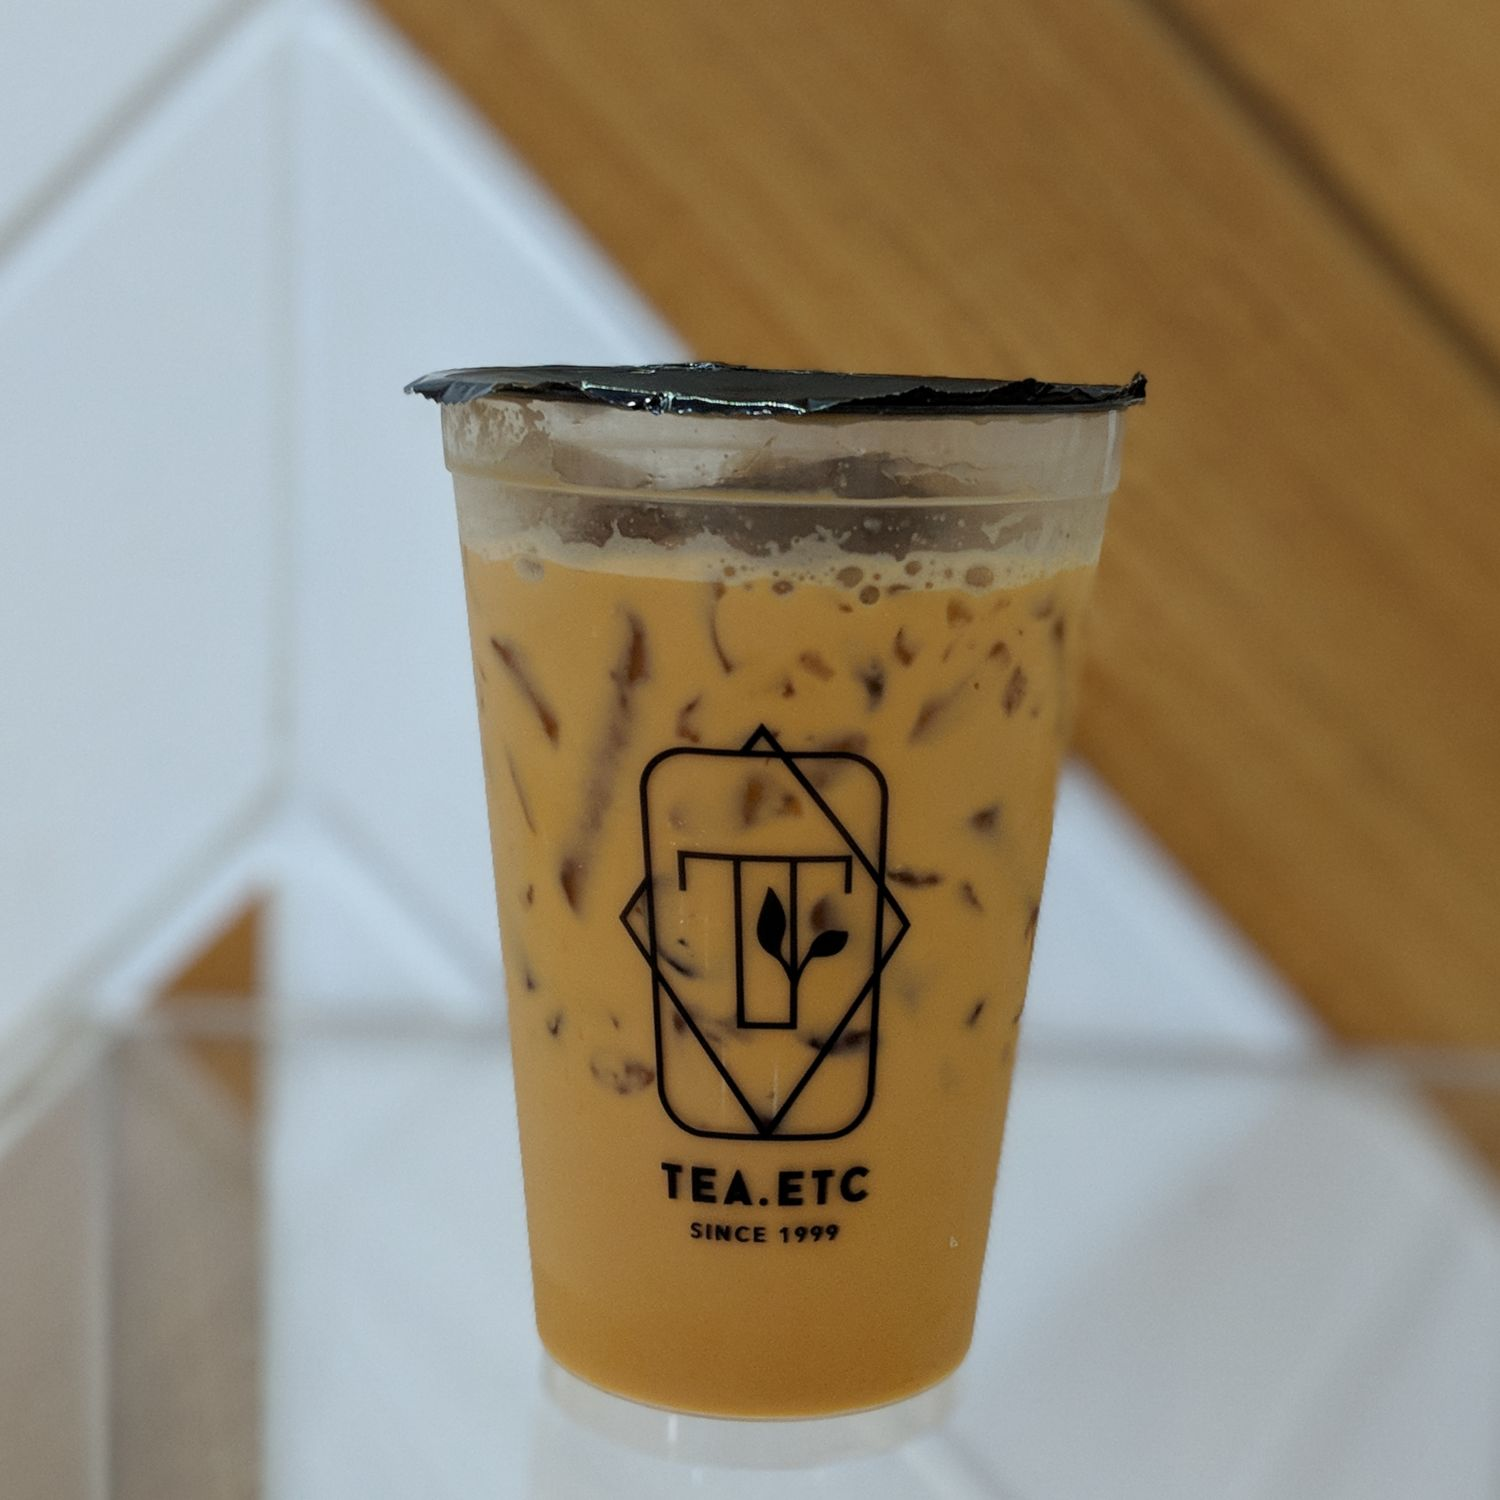 Hyatt Place Bangkok Sukhumvit Tea Etc Iced Thai Milk Tea